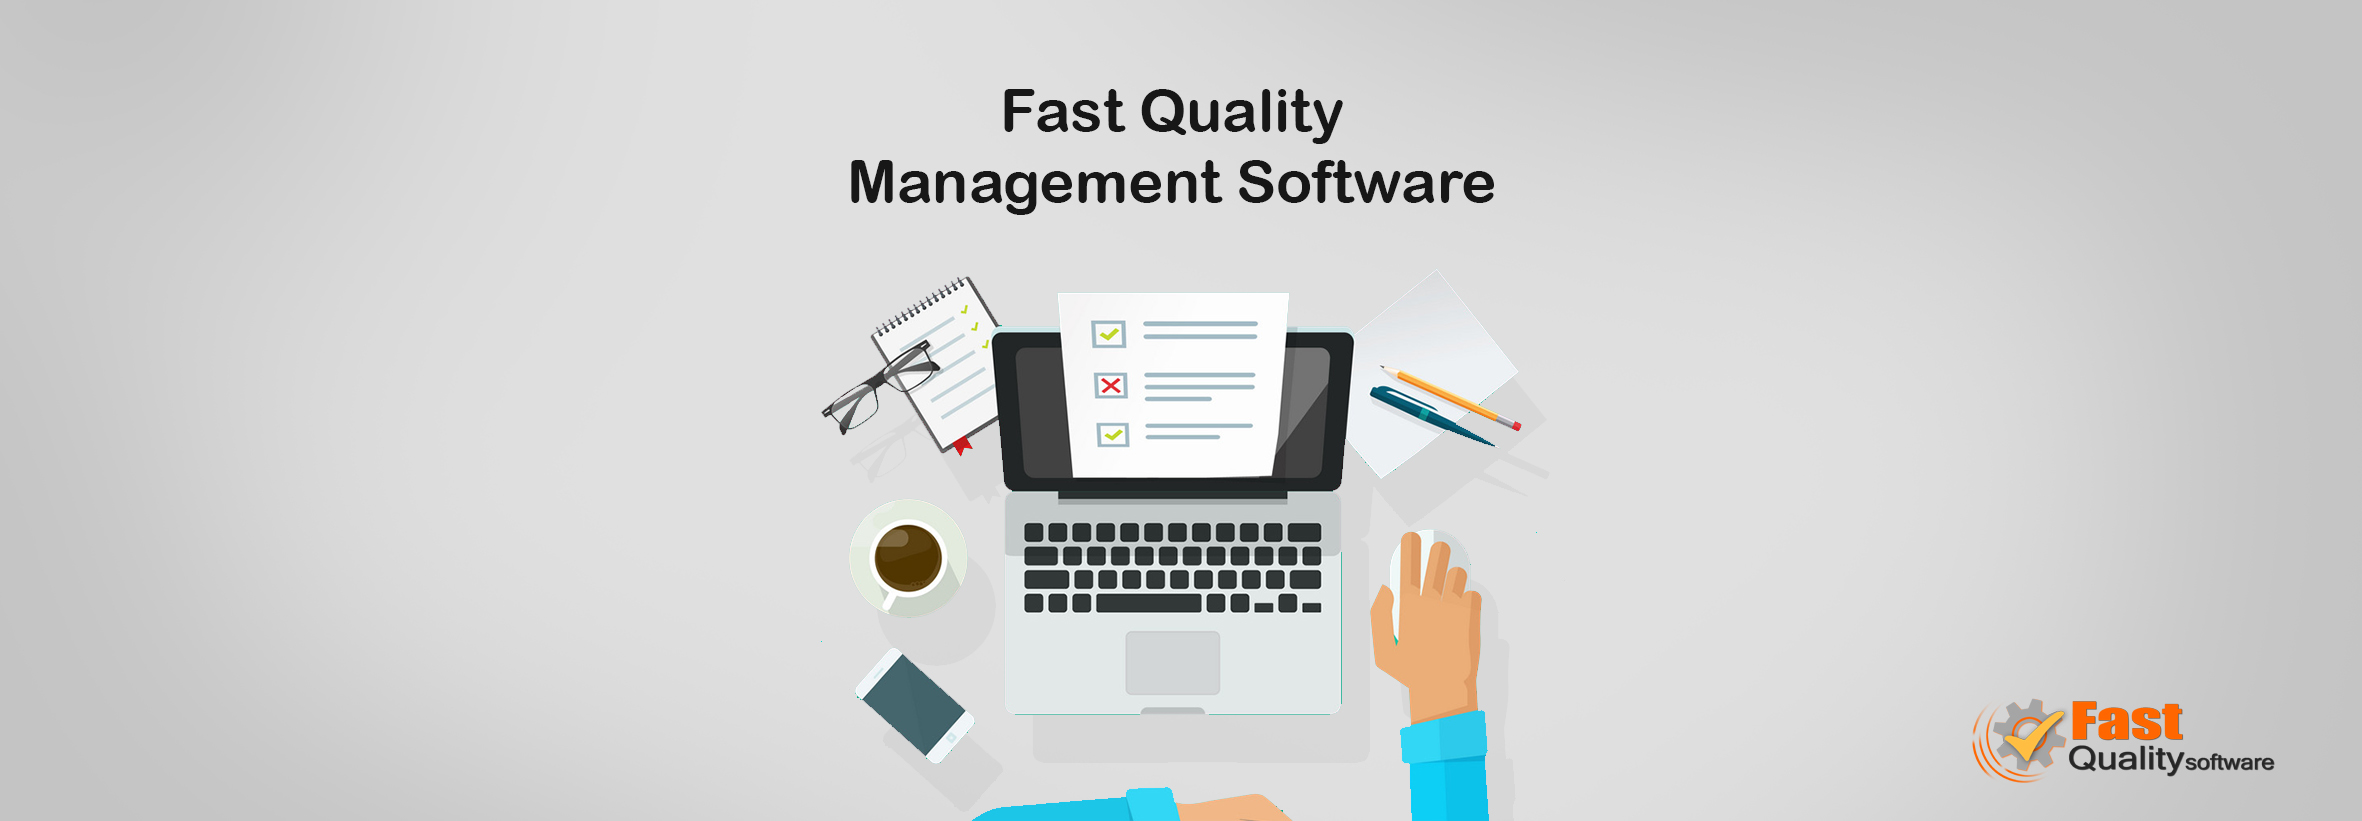 Fast Quality Software